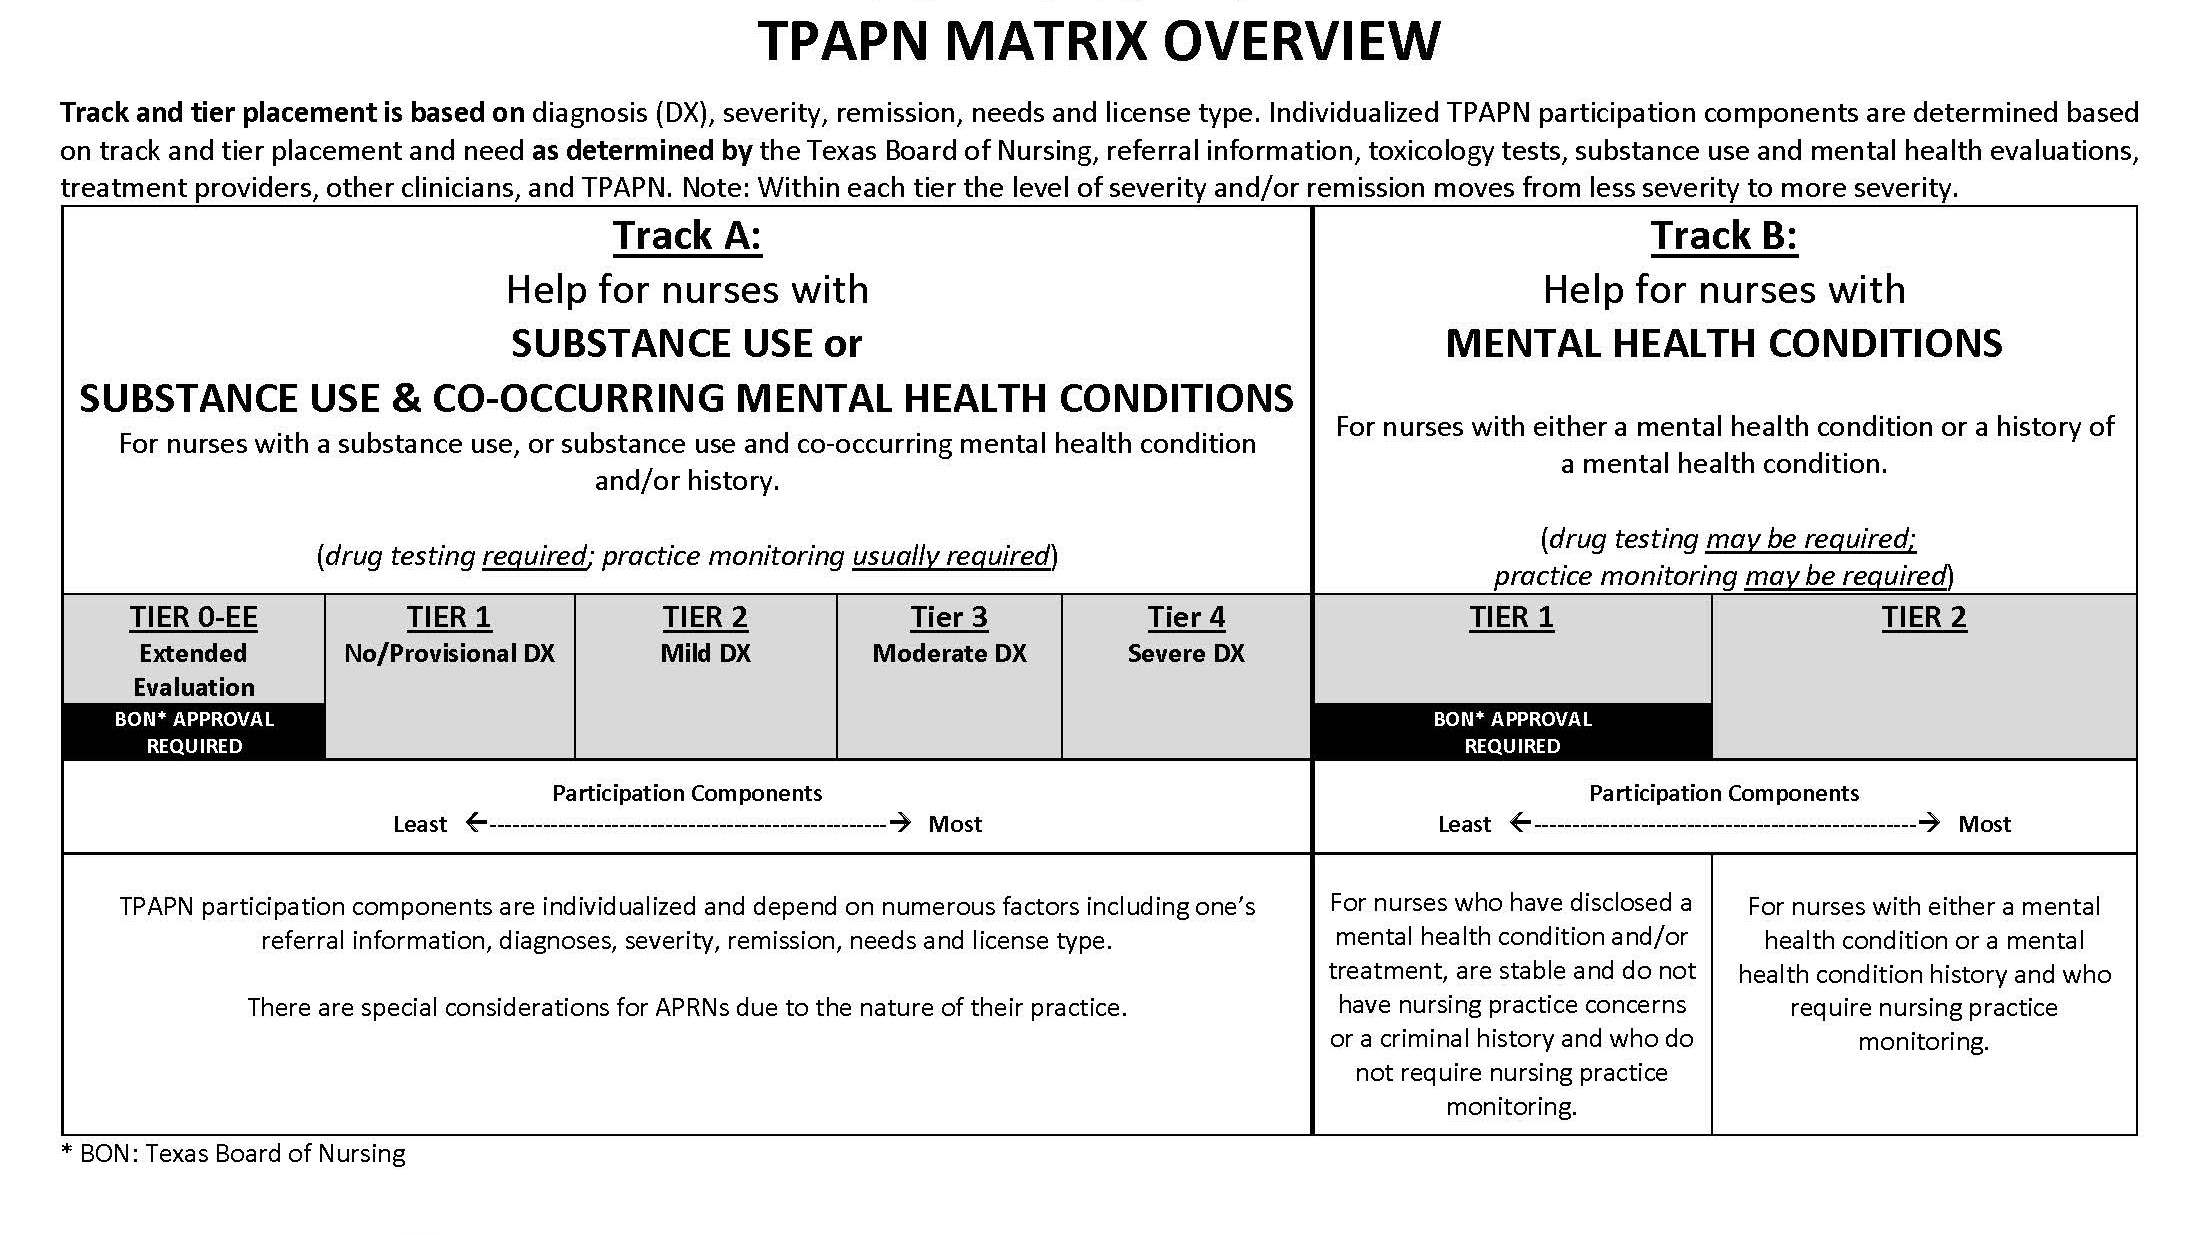 TPAPN Matrix Overview;